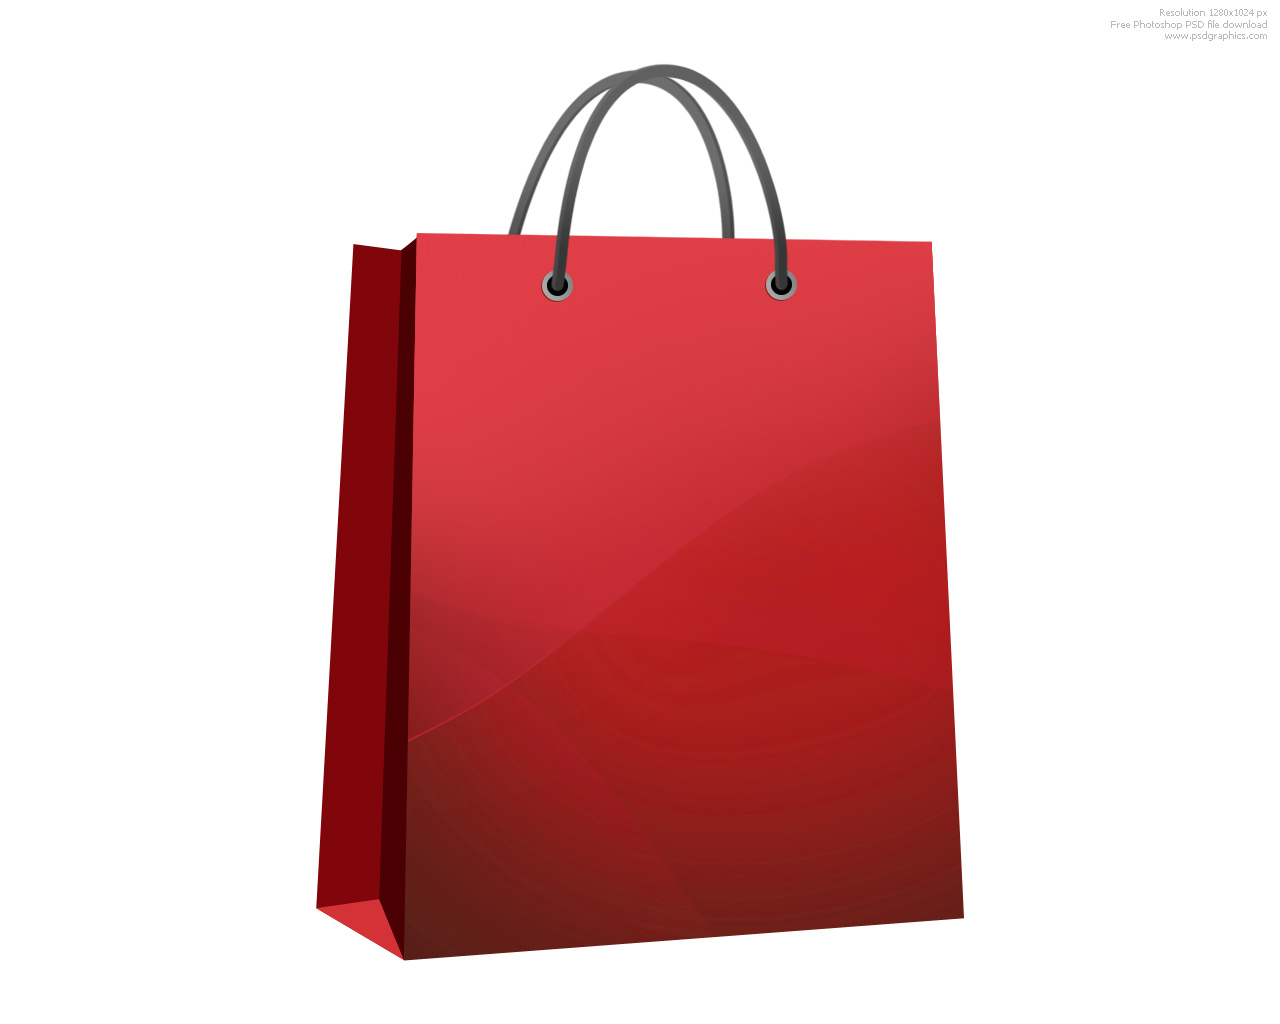 Pictures Of Shopping Bags - ClipArt Best: www.clipartbest.com/pictures-of-shopping-bags